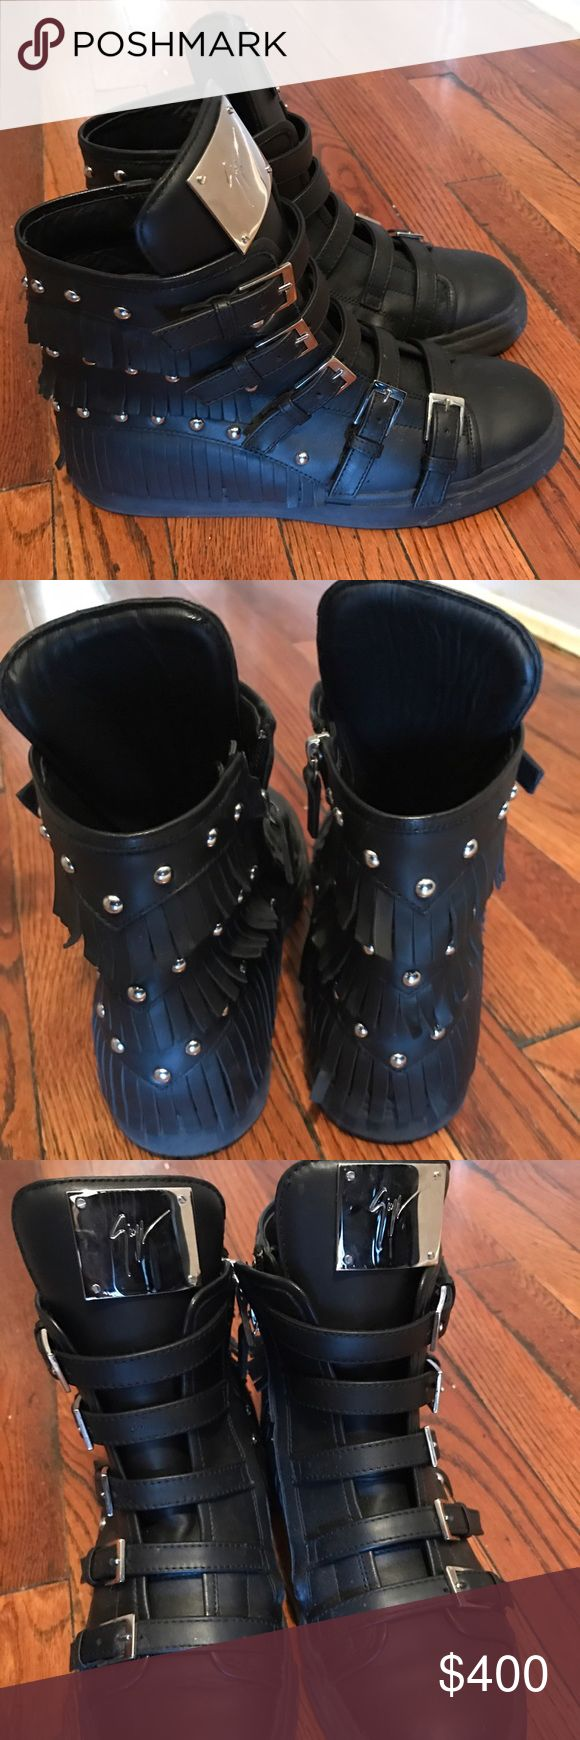 Black Fringe Giuseppe Zanotti Sneakers Worn twice. Too tight. Fringe leather and studded detail. Make any offers in the offers link. No trades on these. Thanks! Giuseppe Zanotti Shoes Sneakers